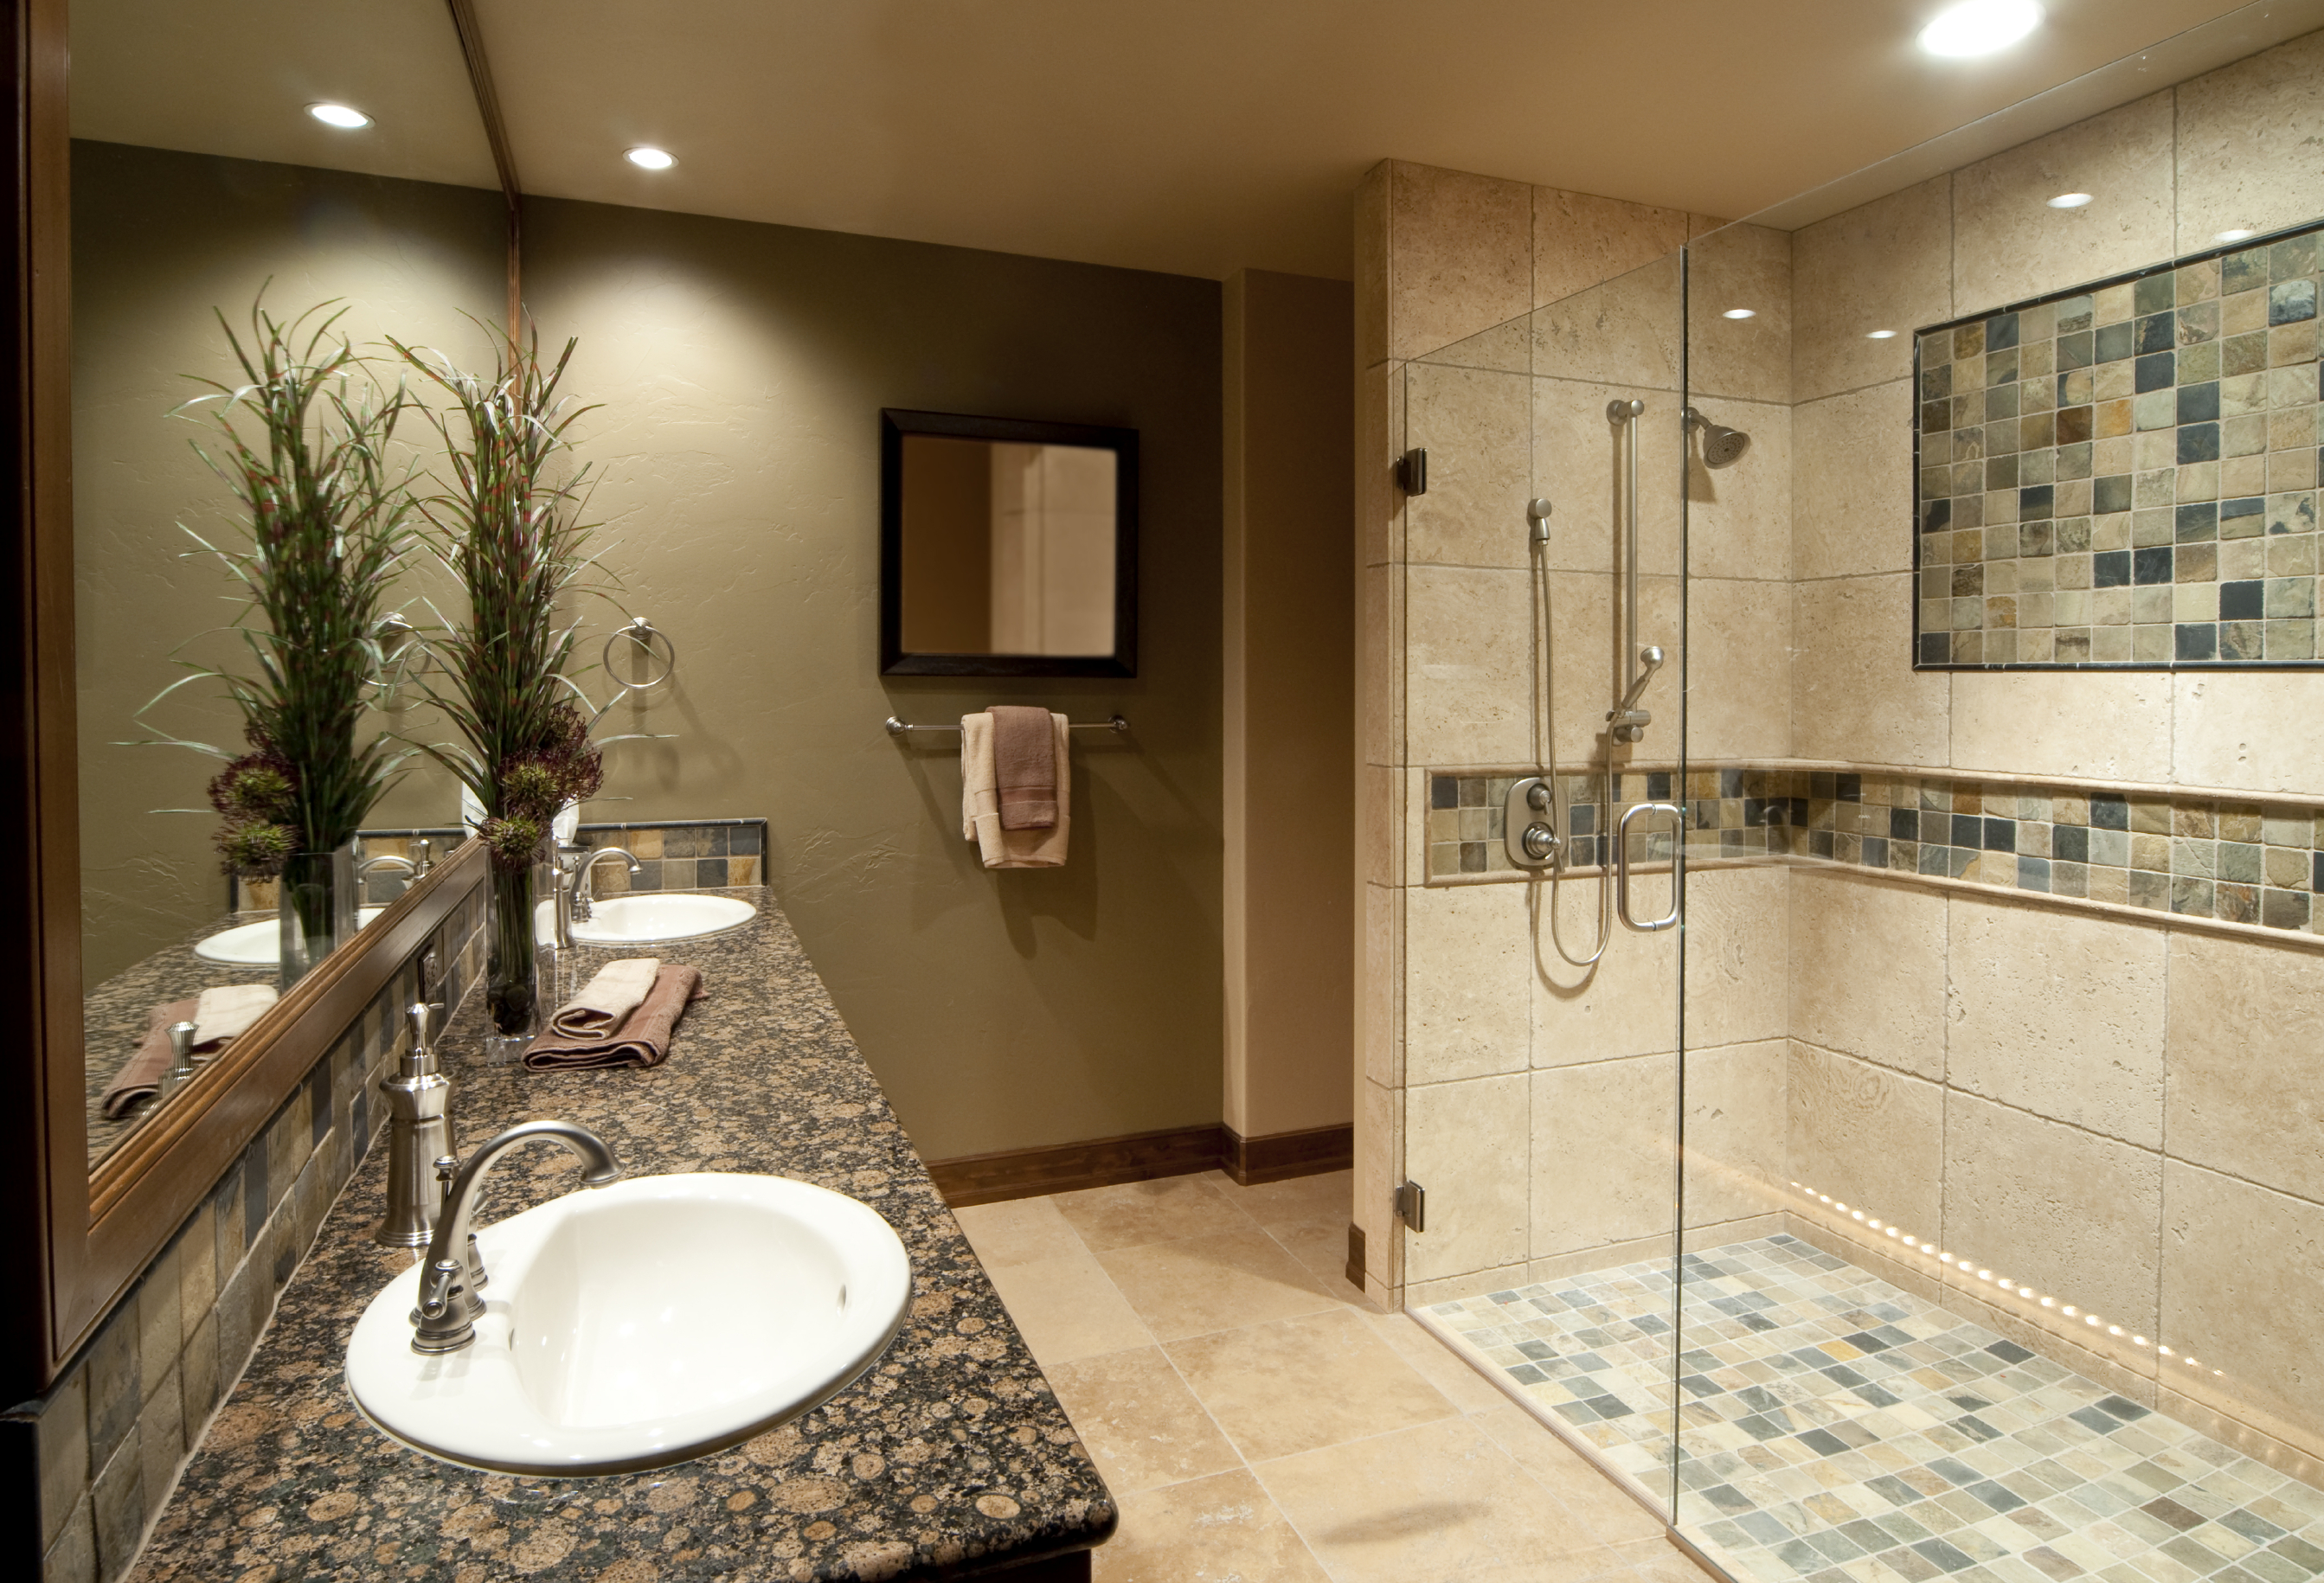 tips for bathroom remodeling rh degraceplumbing com bathroom remodeling contractors alpharetta ga bathroom remodeling contractors alpharetta ga